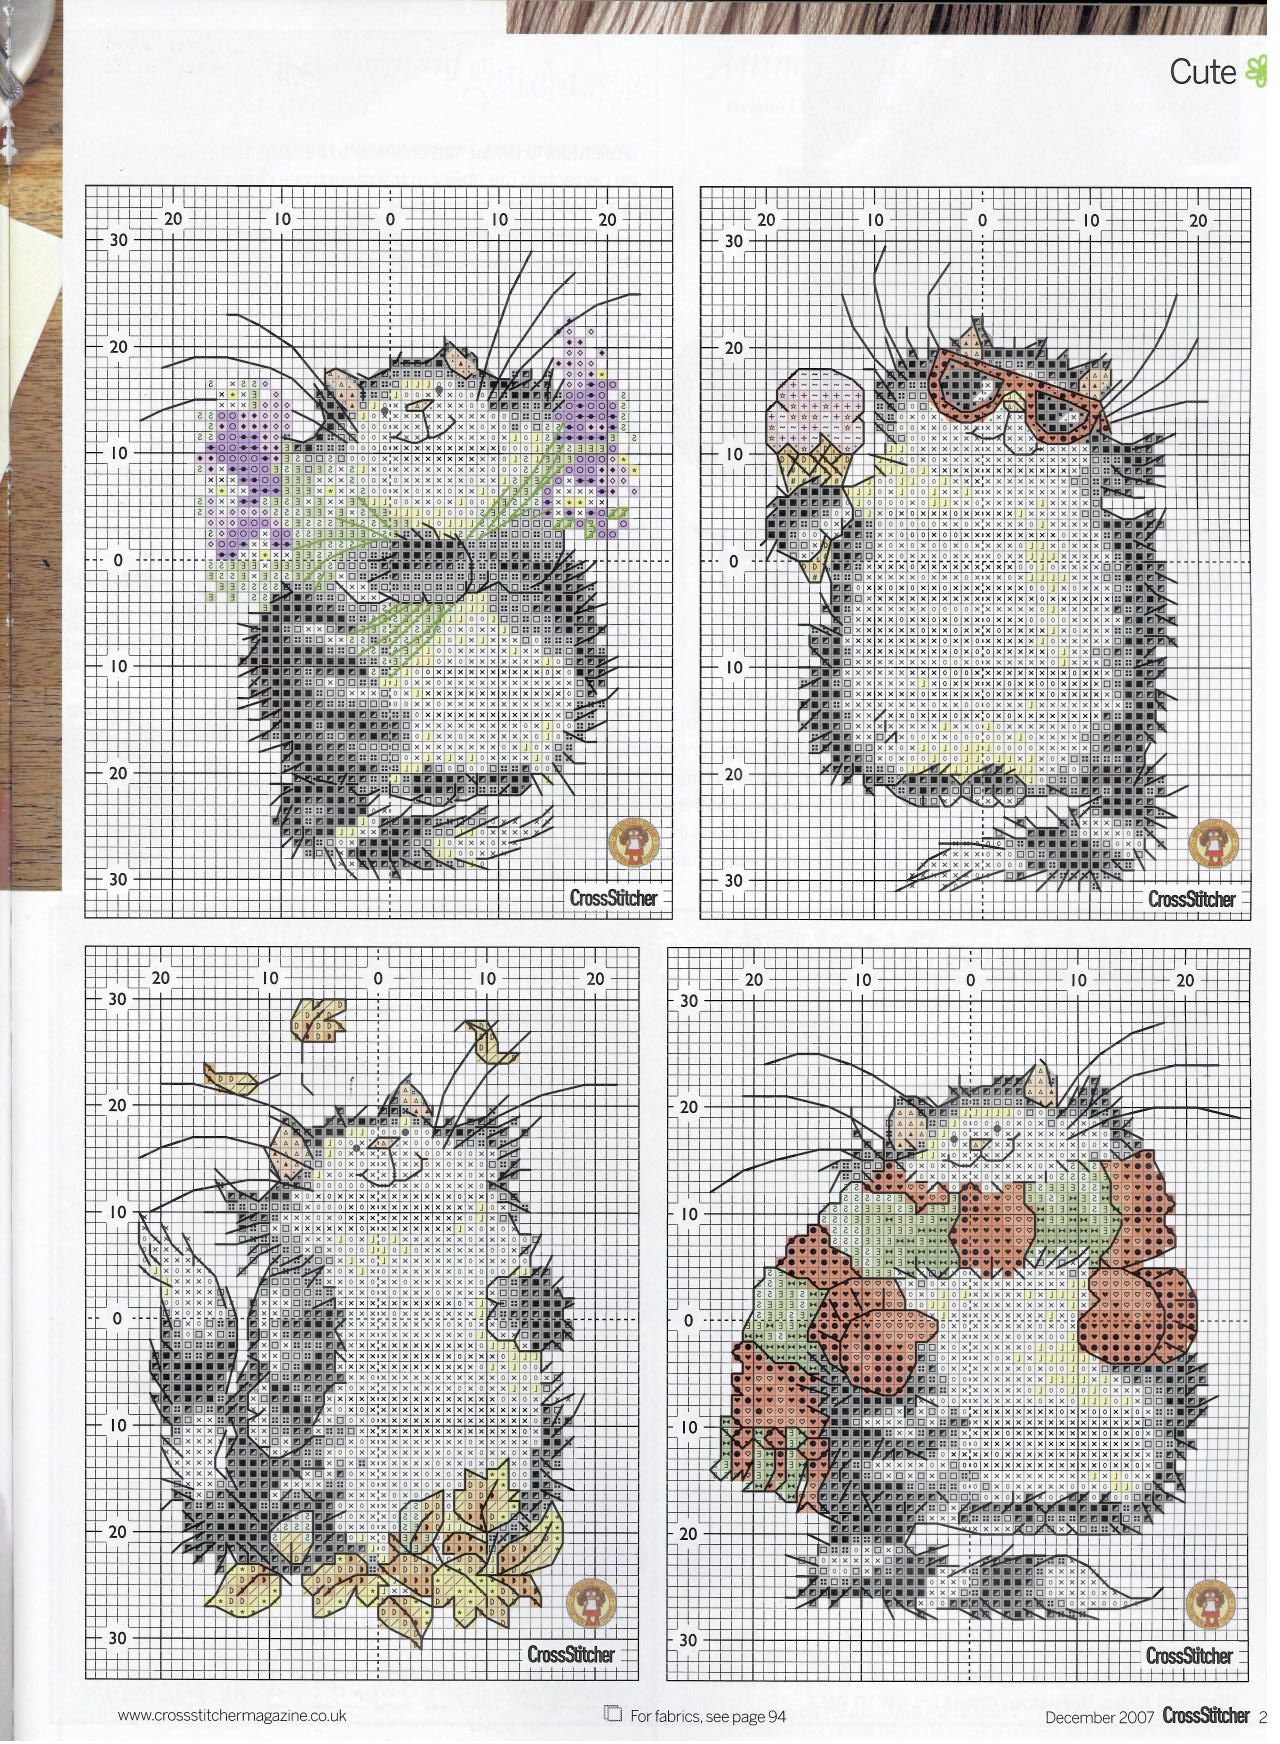 Cool Cats (Margaret Sherry) From Cross Stitcher N°194 December 2007 4 of 5